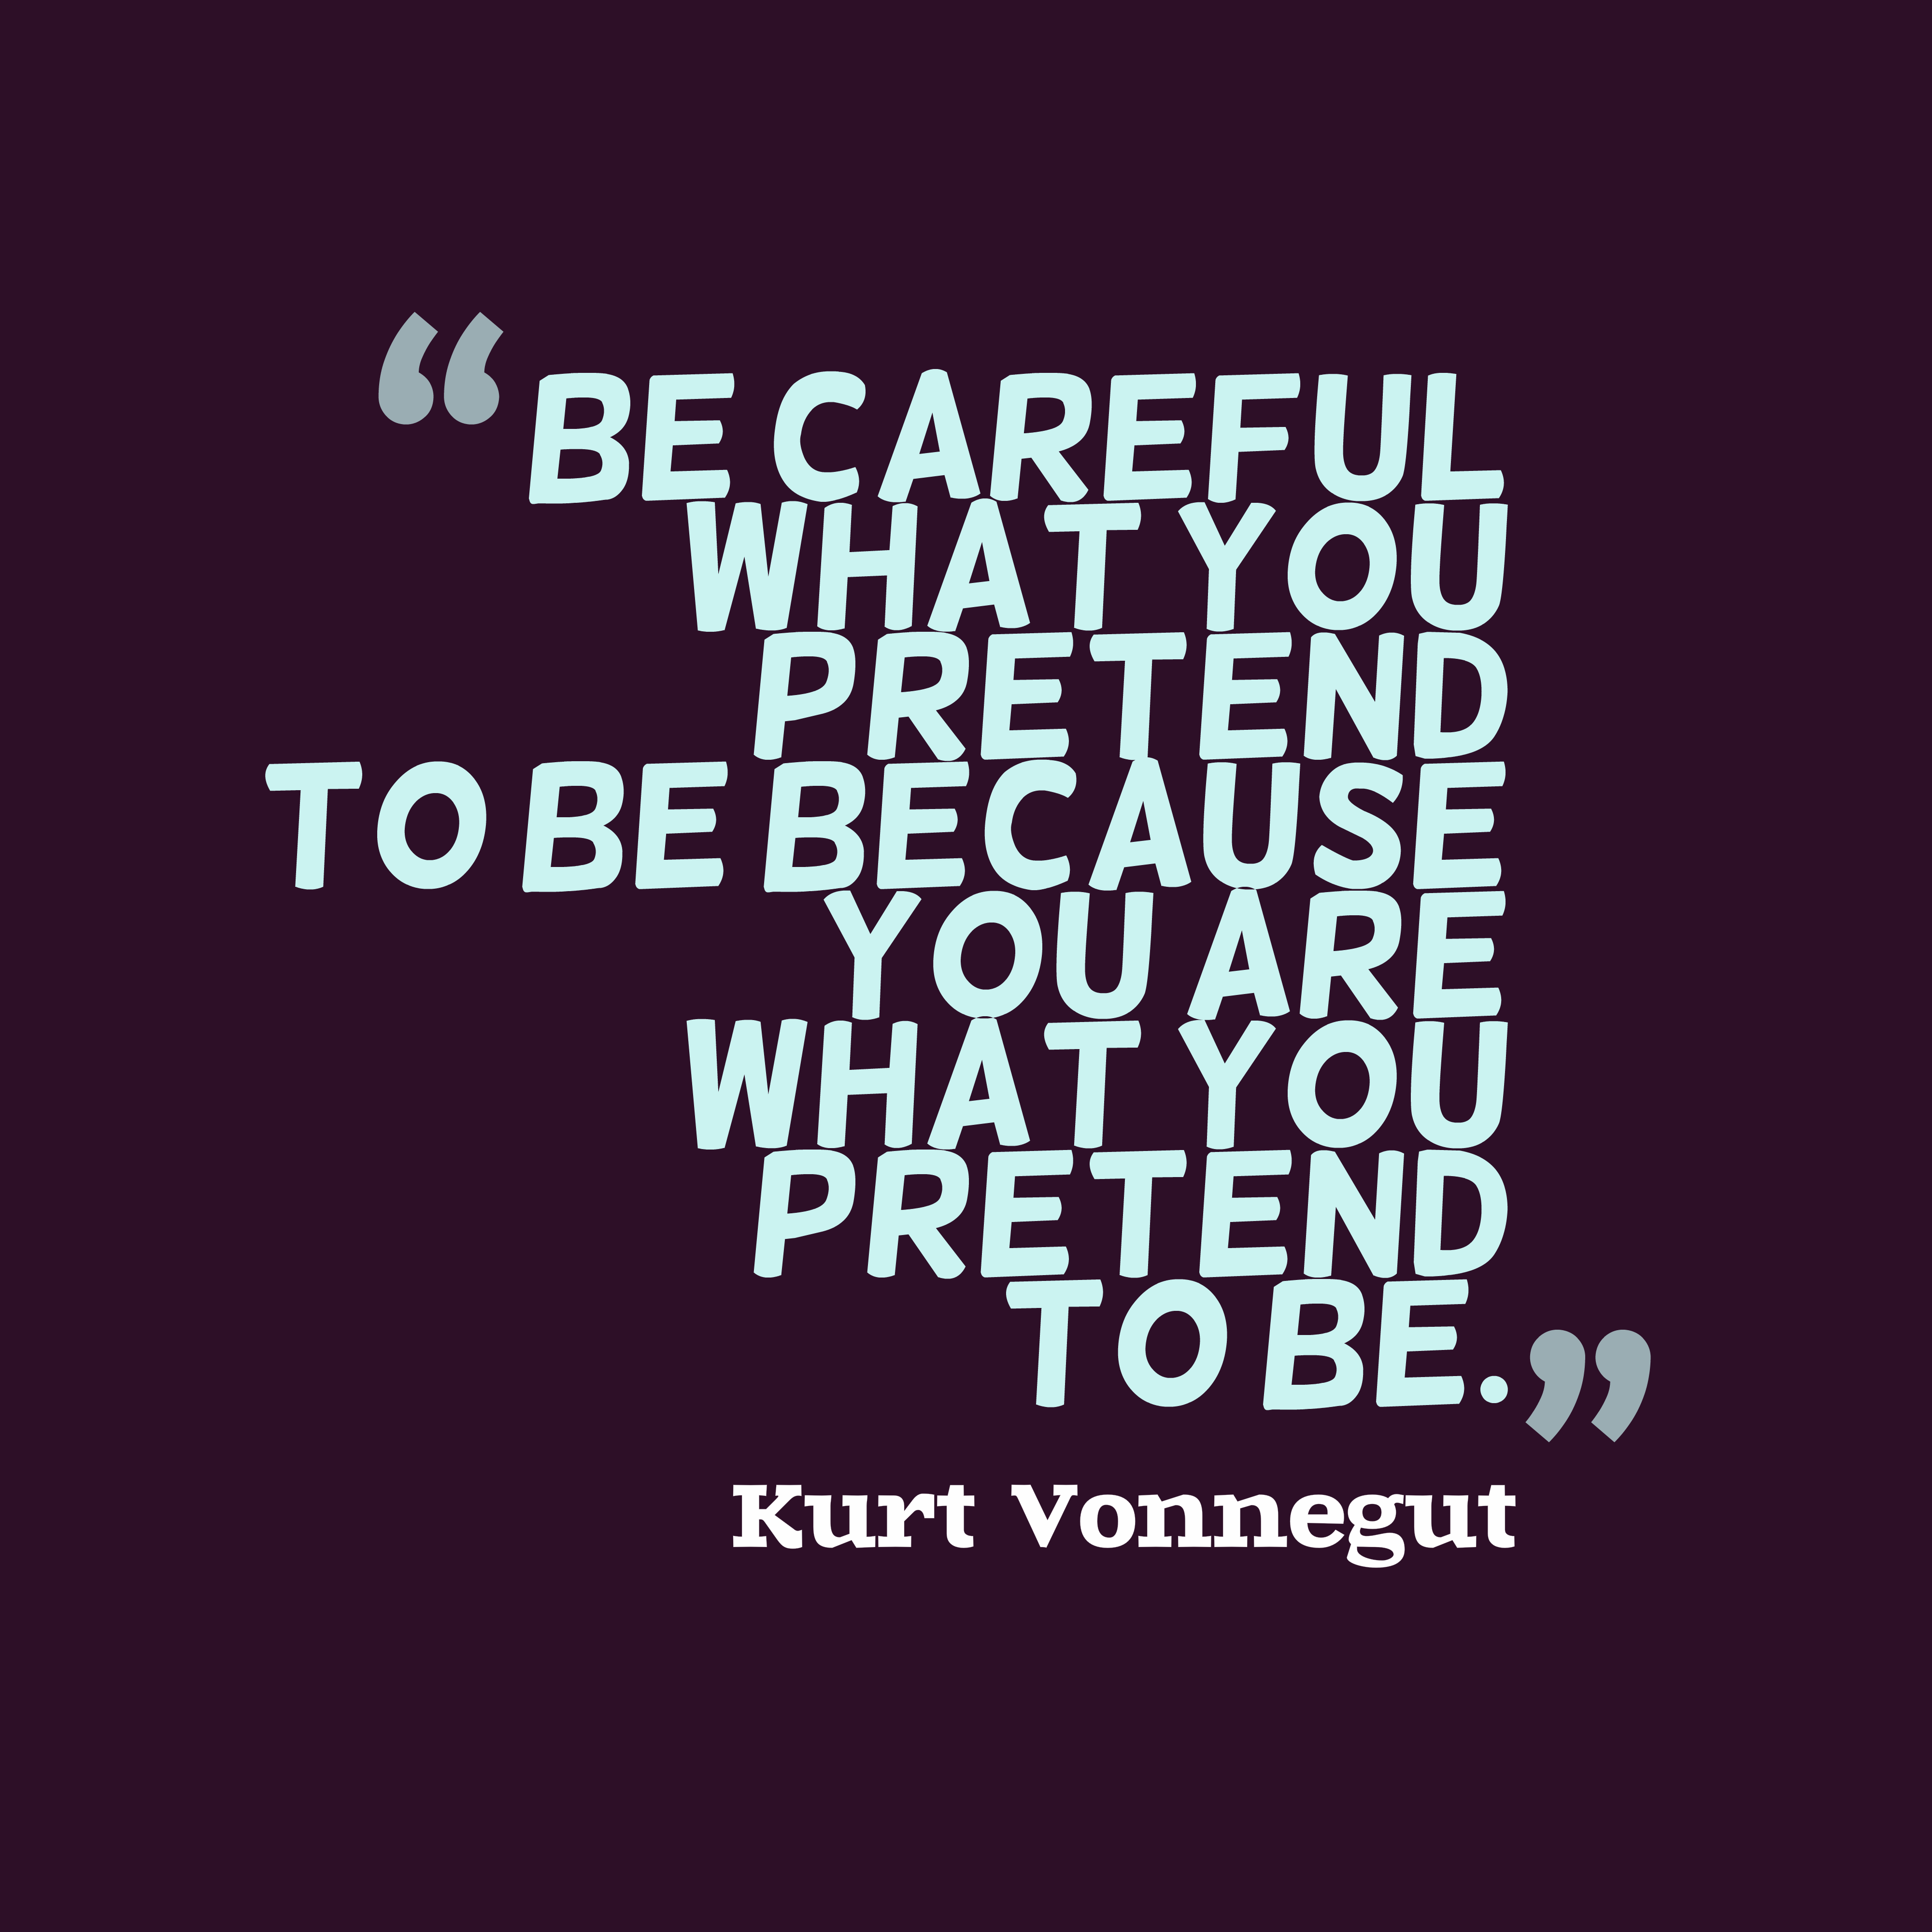 hi-res image of Be careful what you pretend to be because you are what you pretend to be.